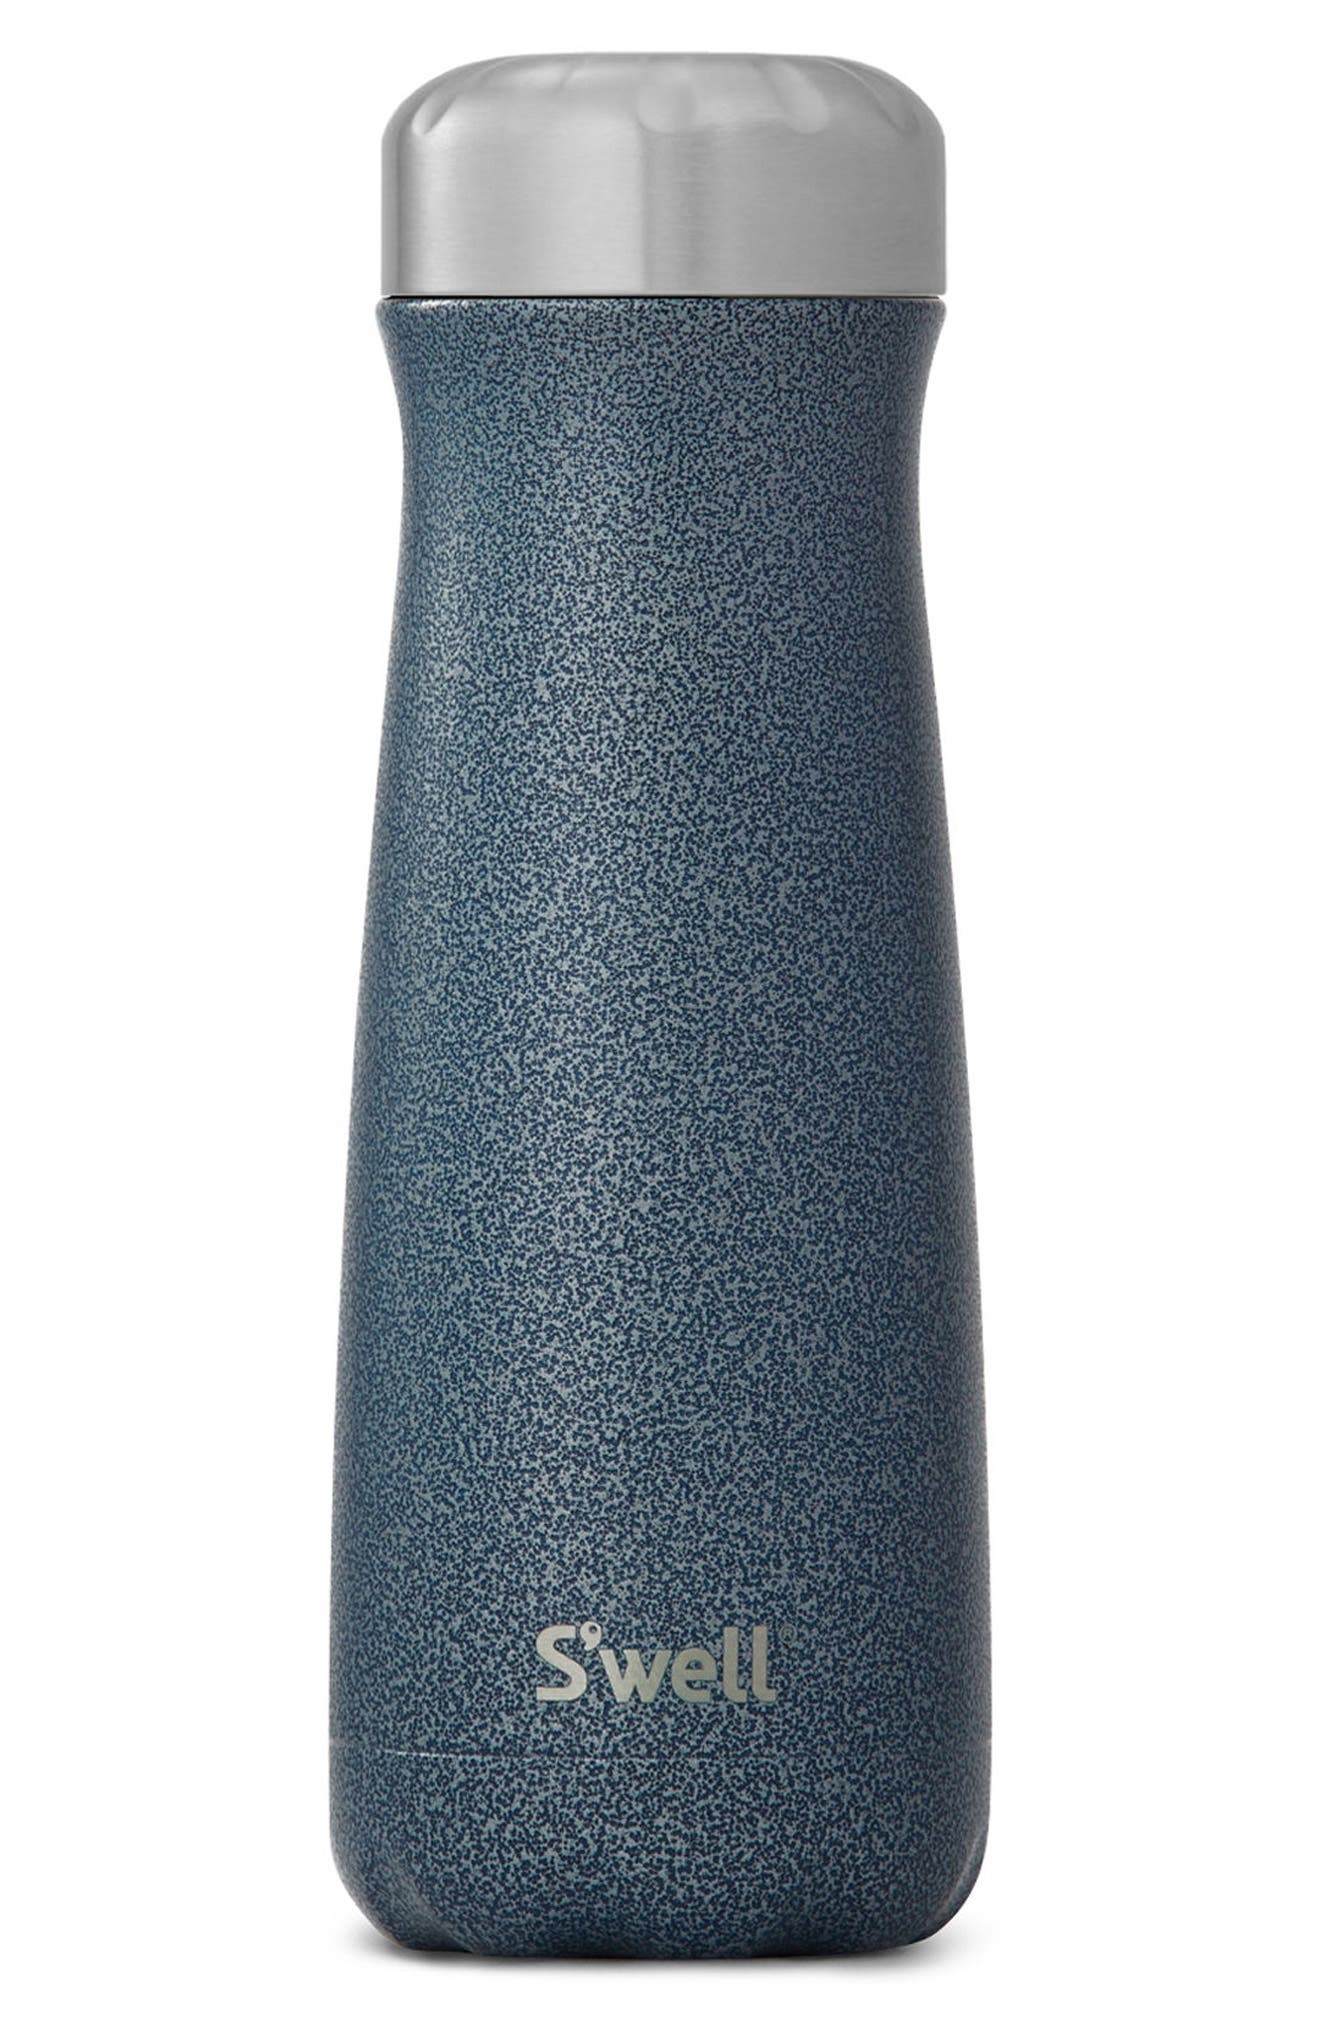 Traveler Night Sky Insulated Stainless Steel Water Bottle,                             Main thumbnail 1, color,                             NIGHT SKY